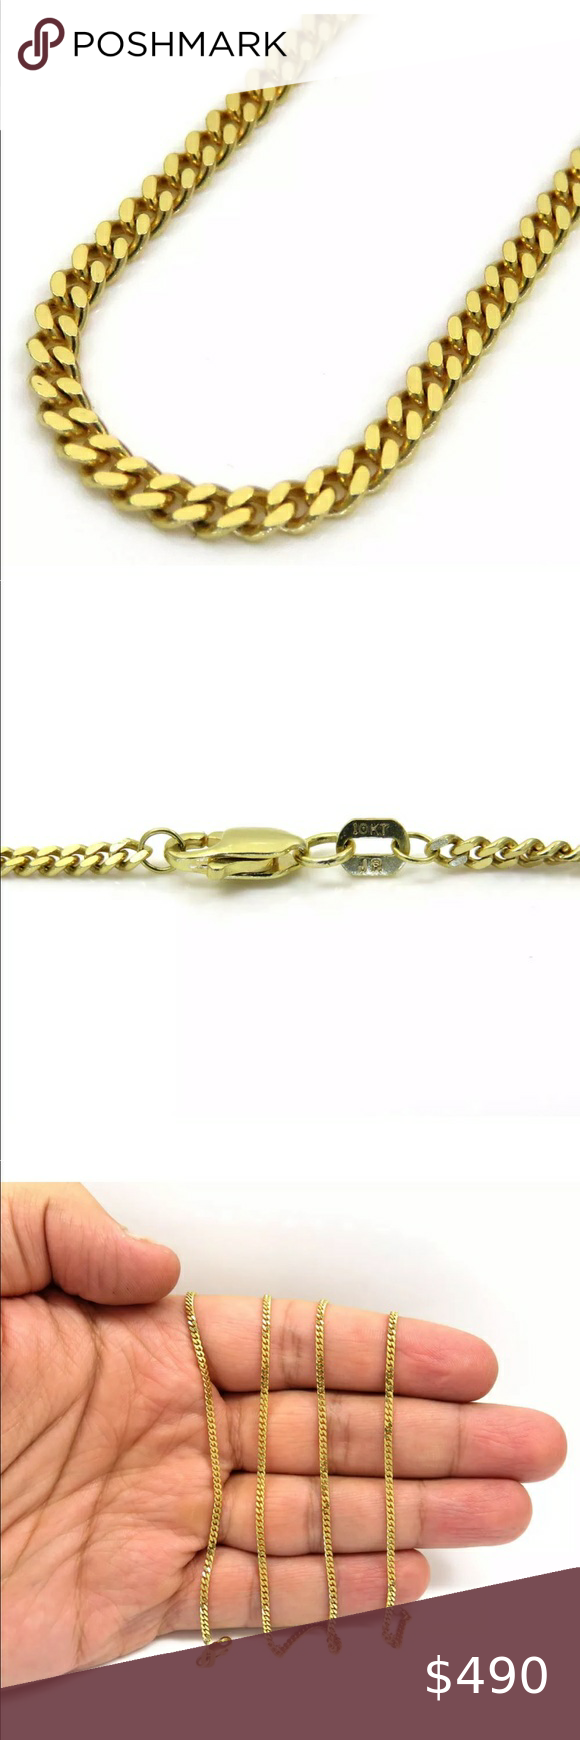 Real Solid 10k Gold Miami Cuban 2mm 24 Necklace In 2020 Mens Accessories Jewelry 10k Gold Gold